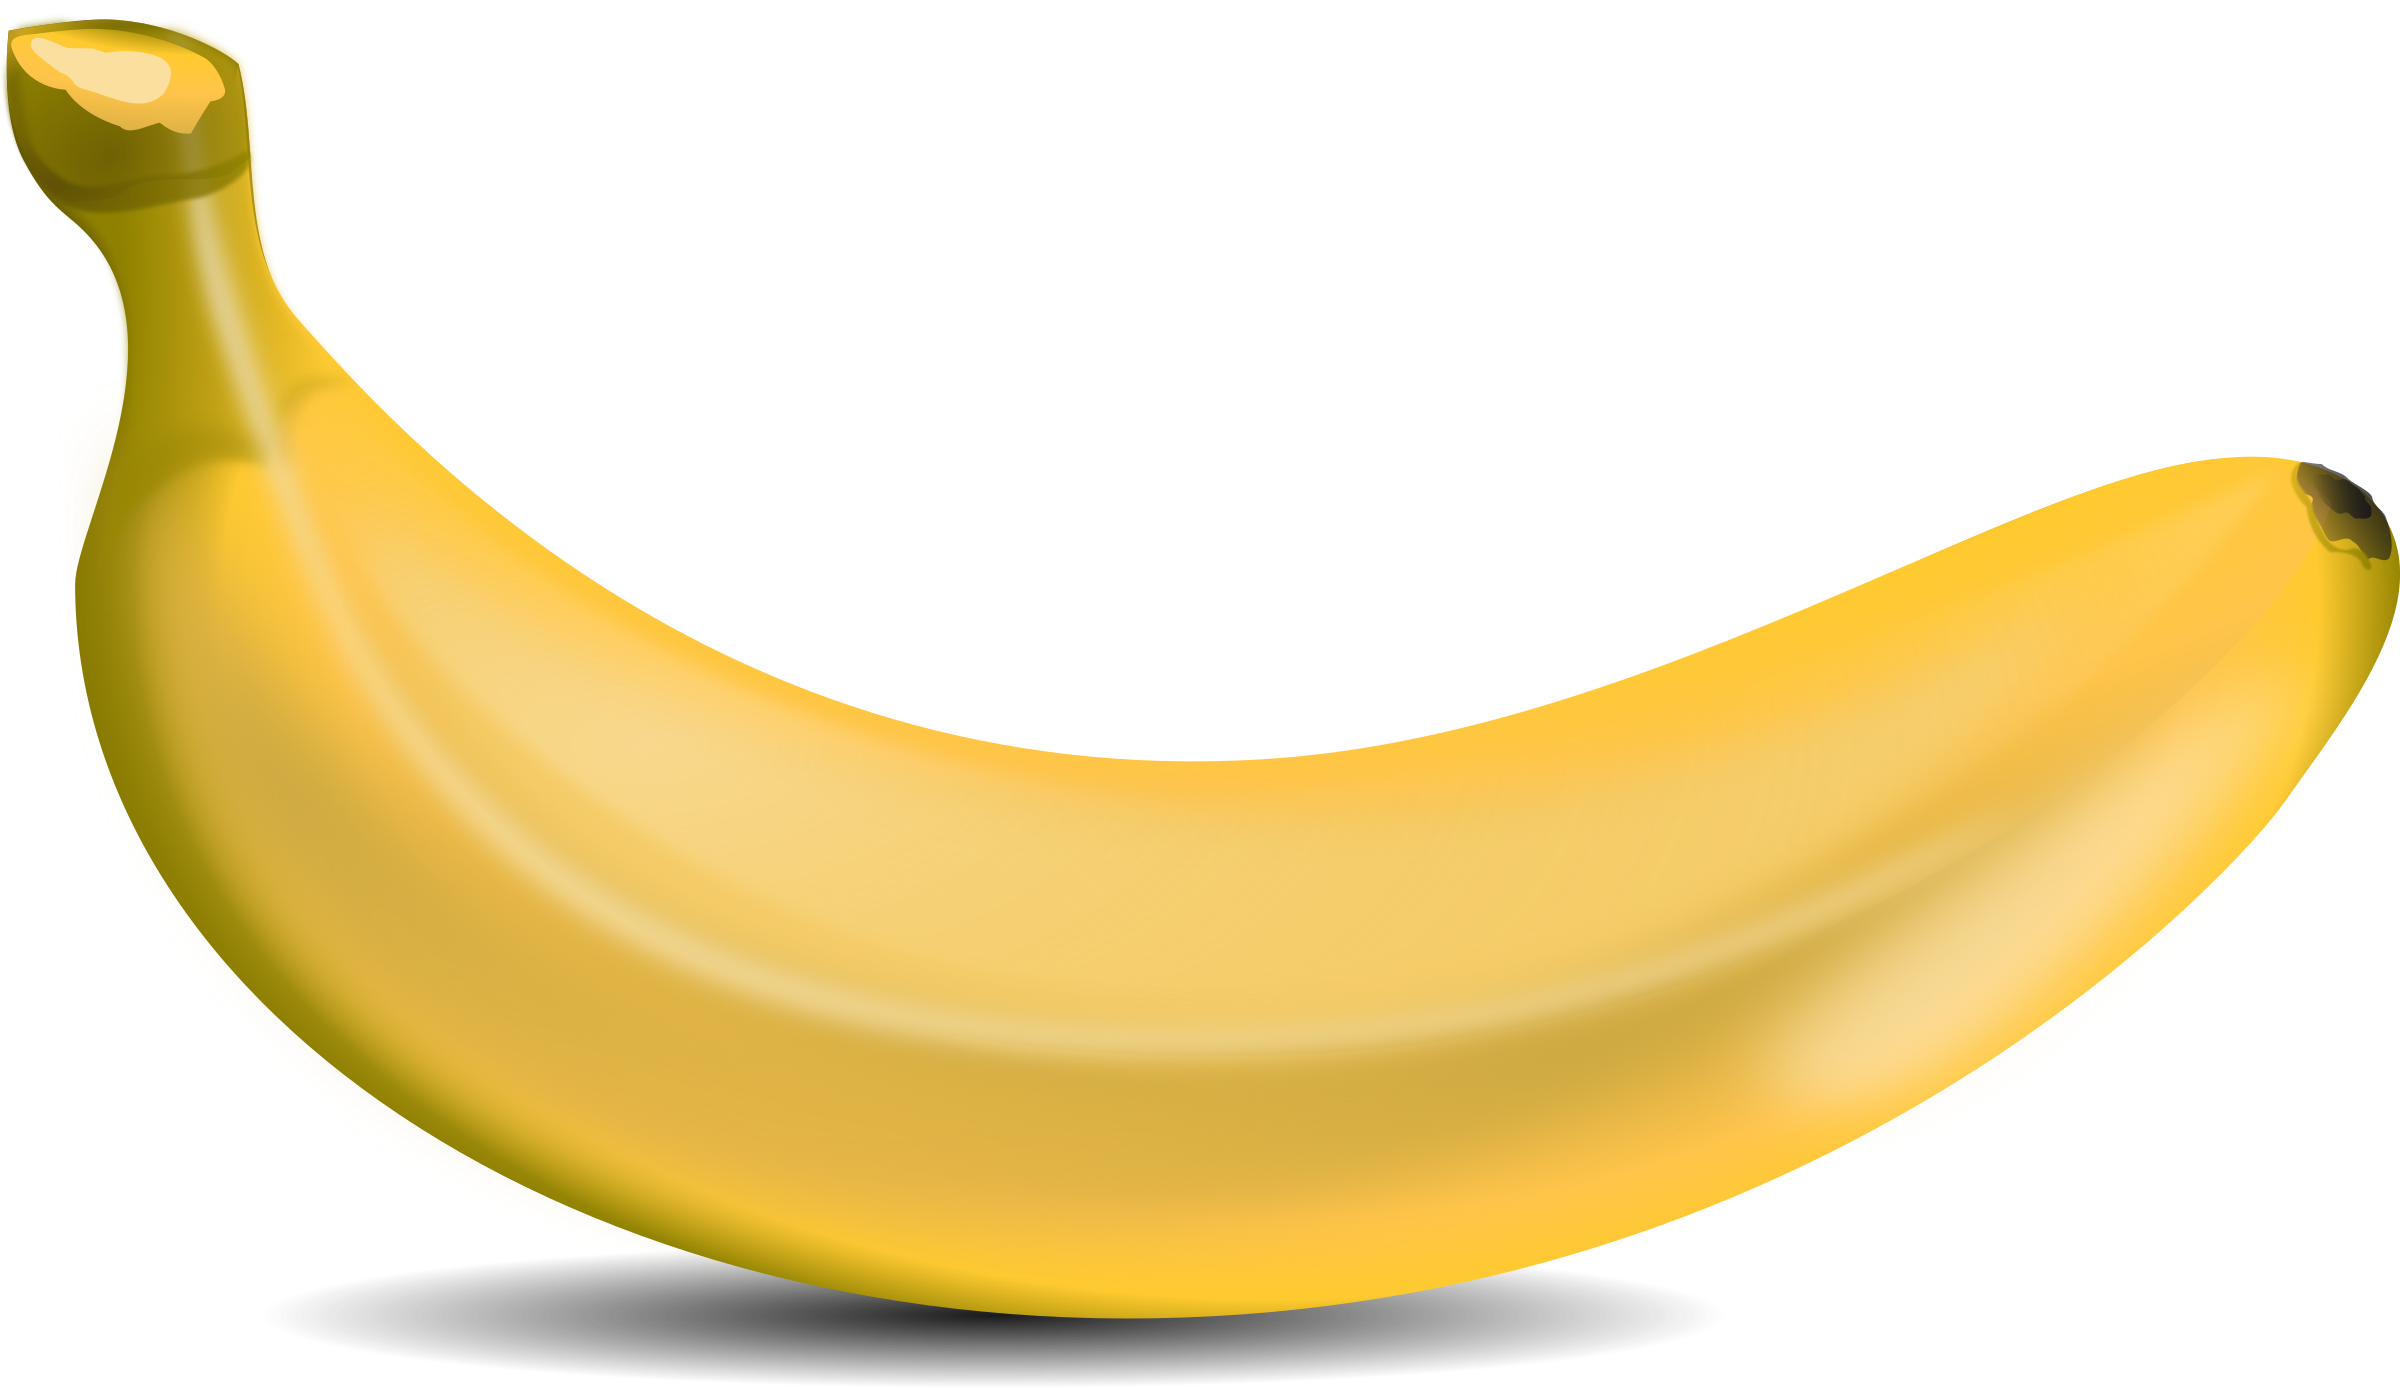 bananas png - photo #5